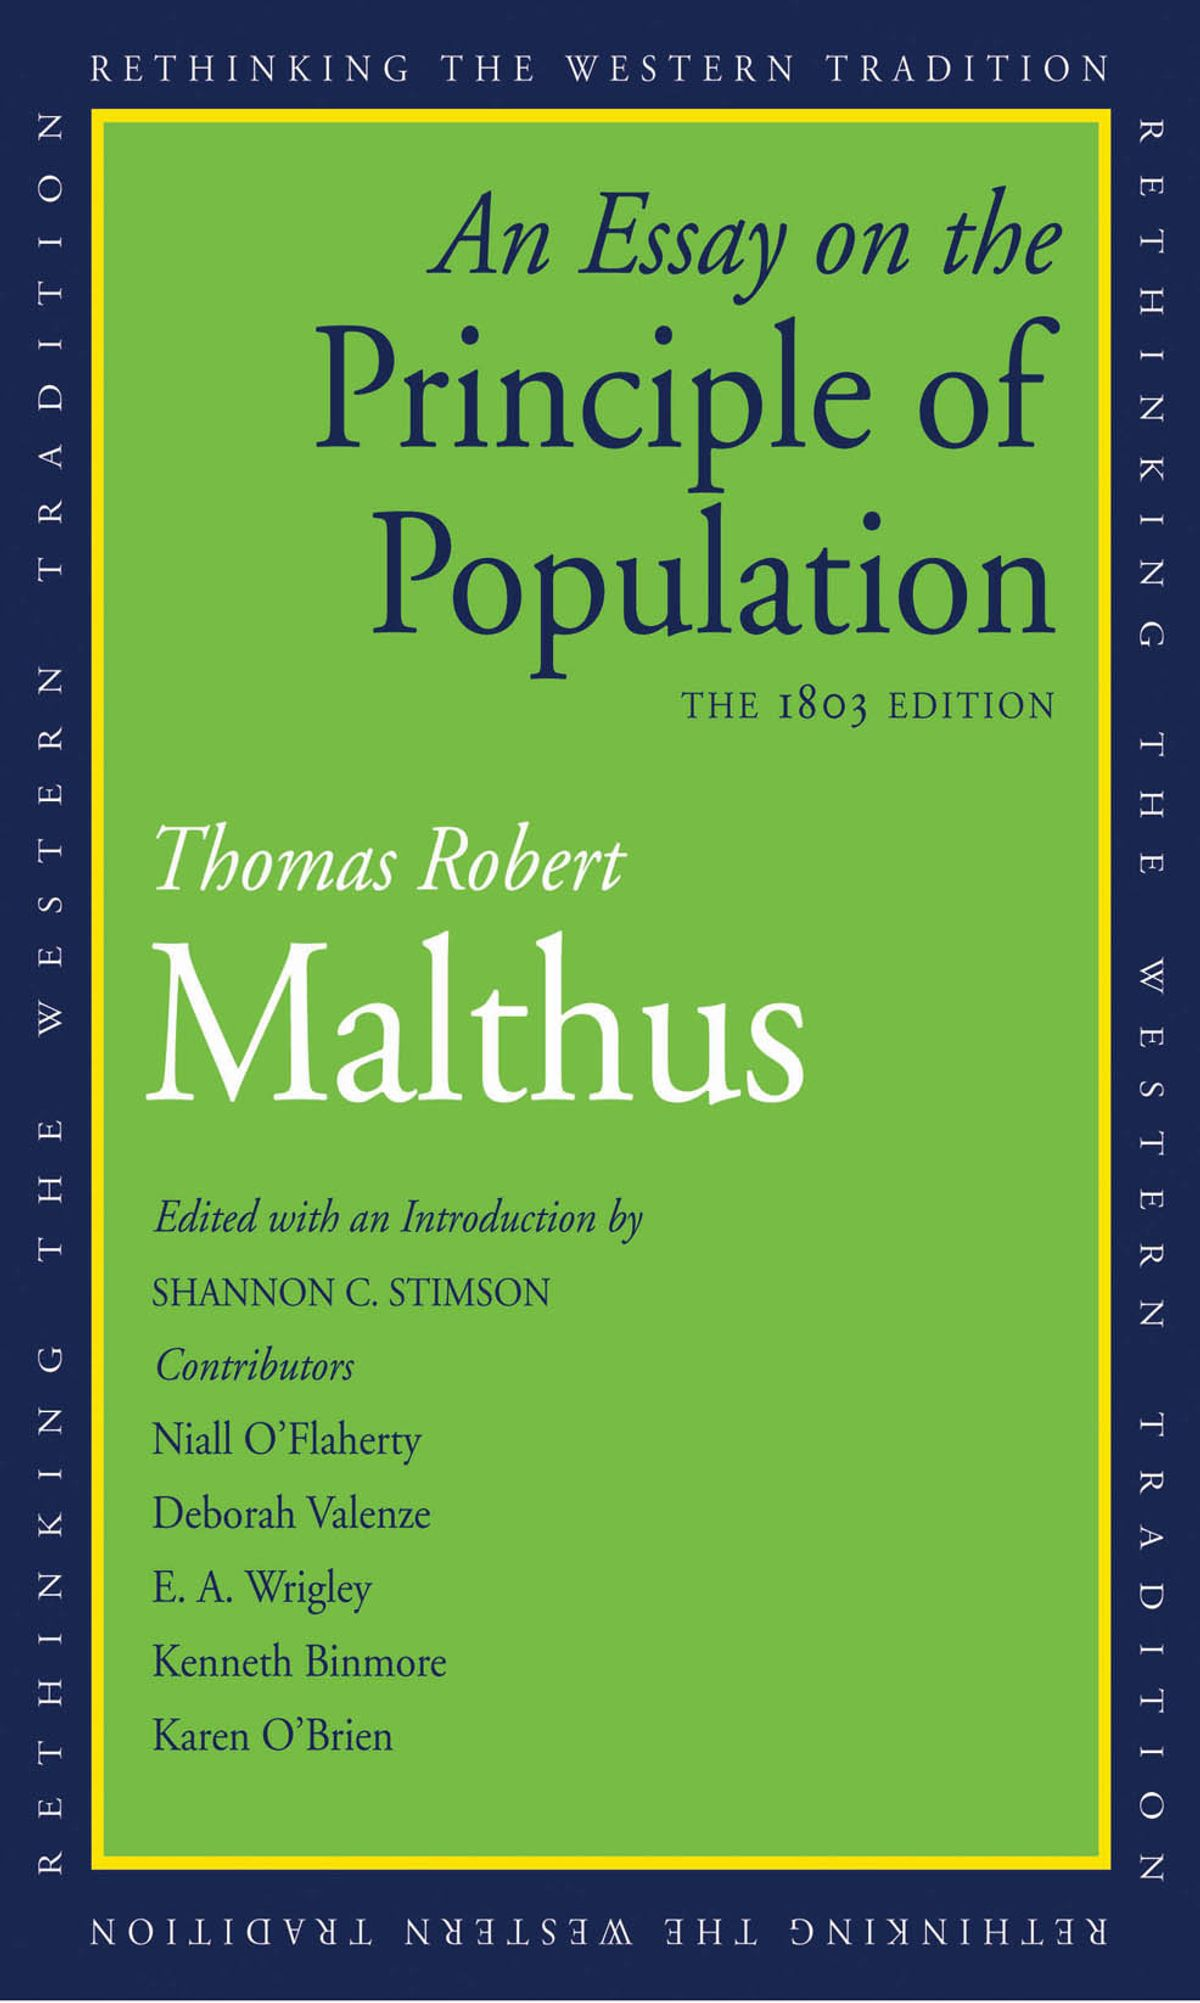 003 An Essay On The Principle Of Population Fascinating By Thomas Malthus Pdf In Concluded Which Following Full